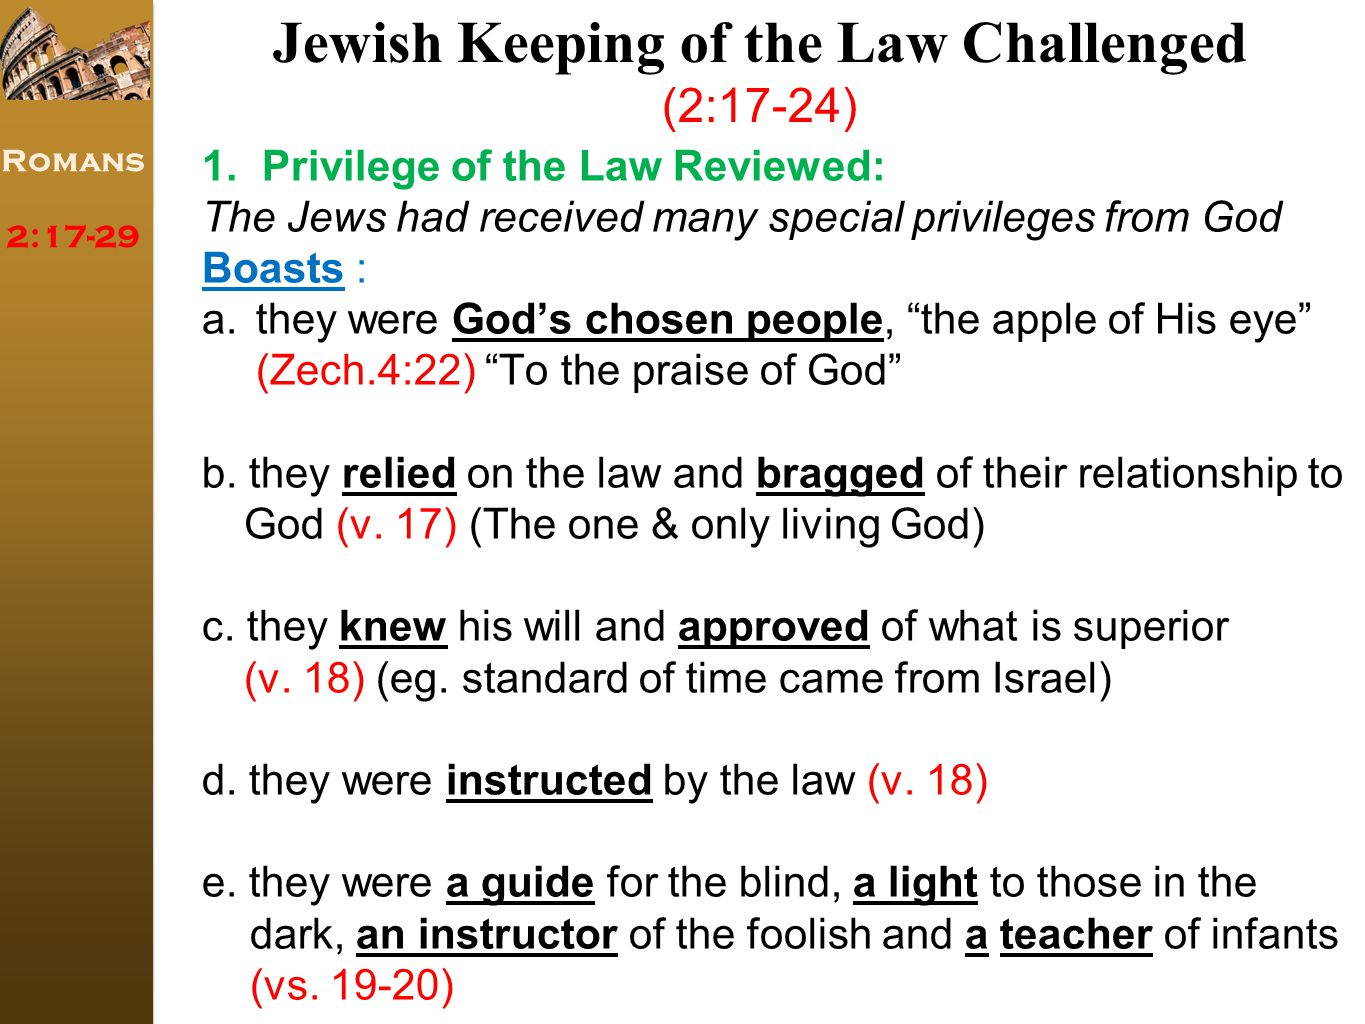 Romans 2:17-29 The Jews had the embodiment of knowledge and truth.